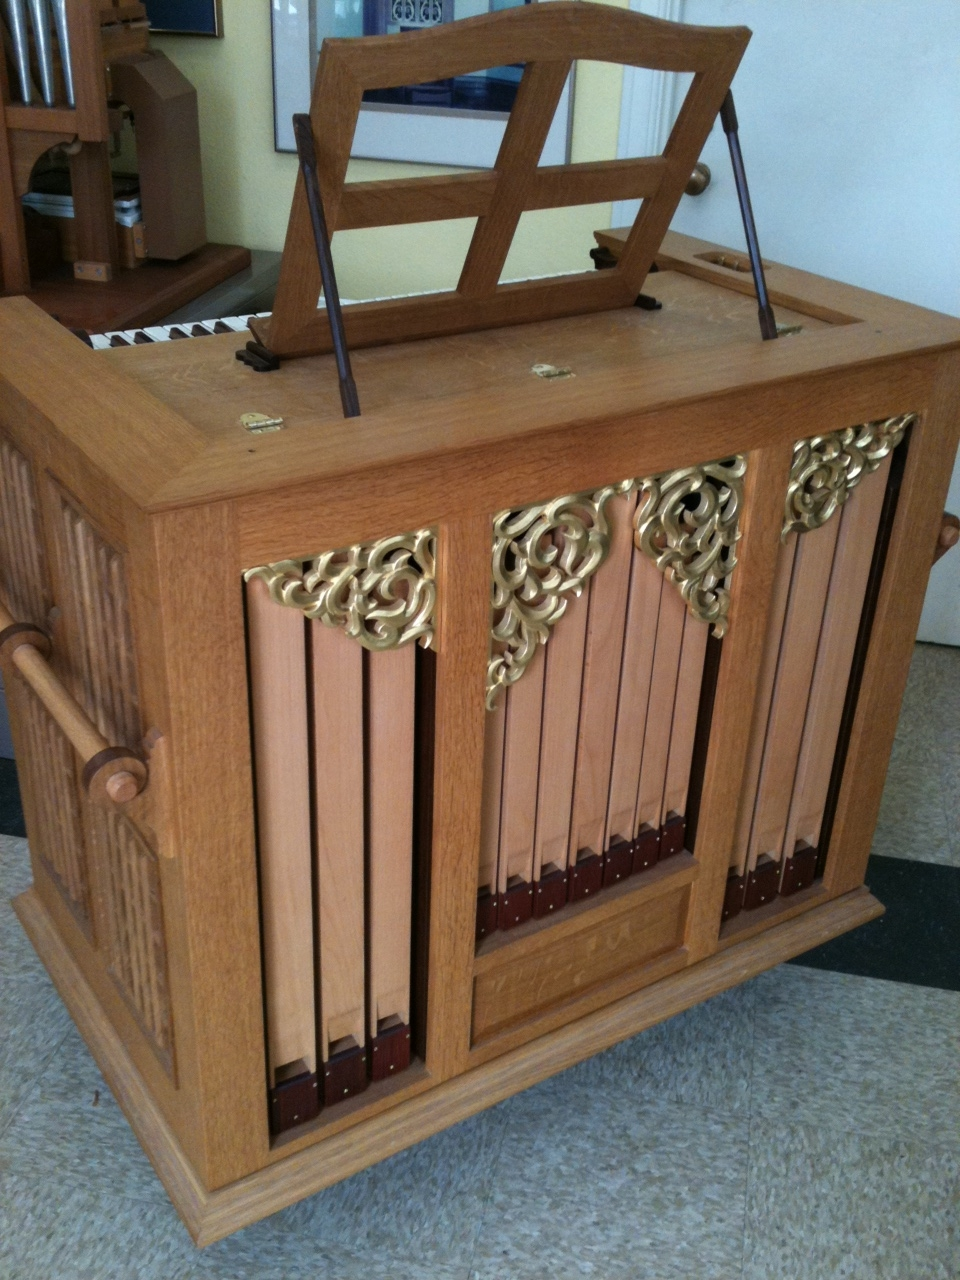 Our Opus 36 Positive organ, ready to leave the shop.